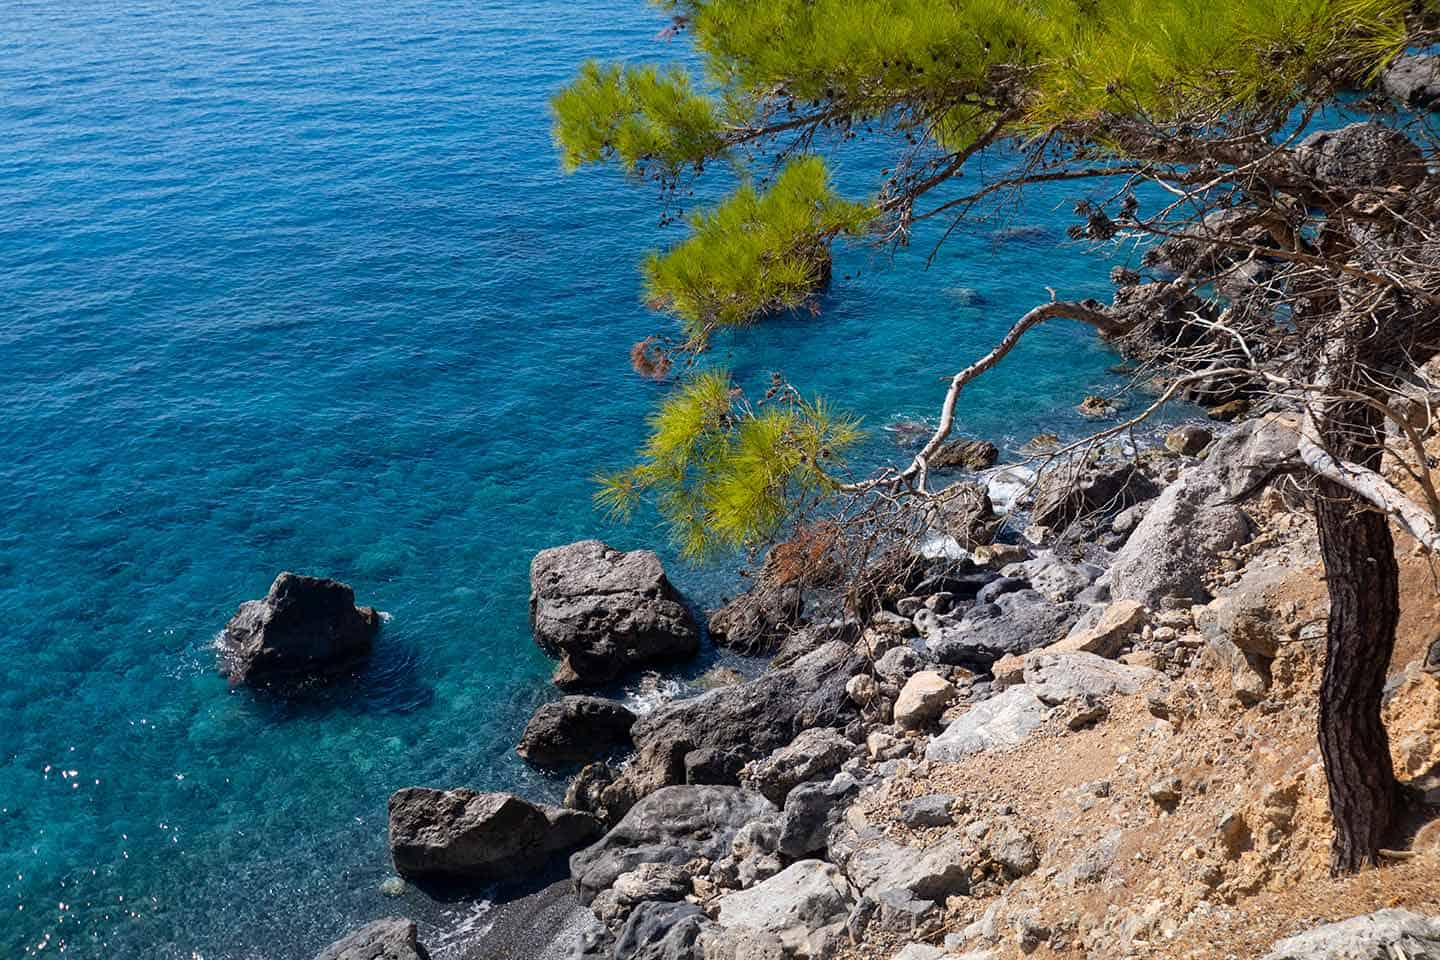 Image of the view from the E4 path near Agios Pavlos